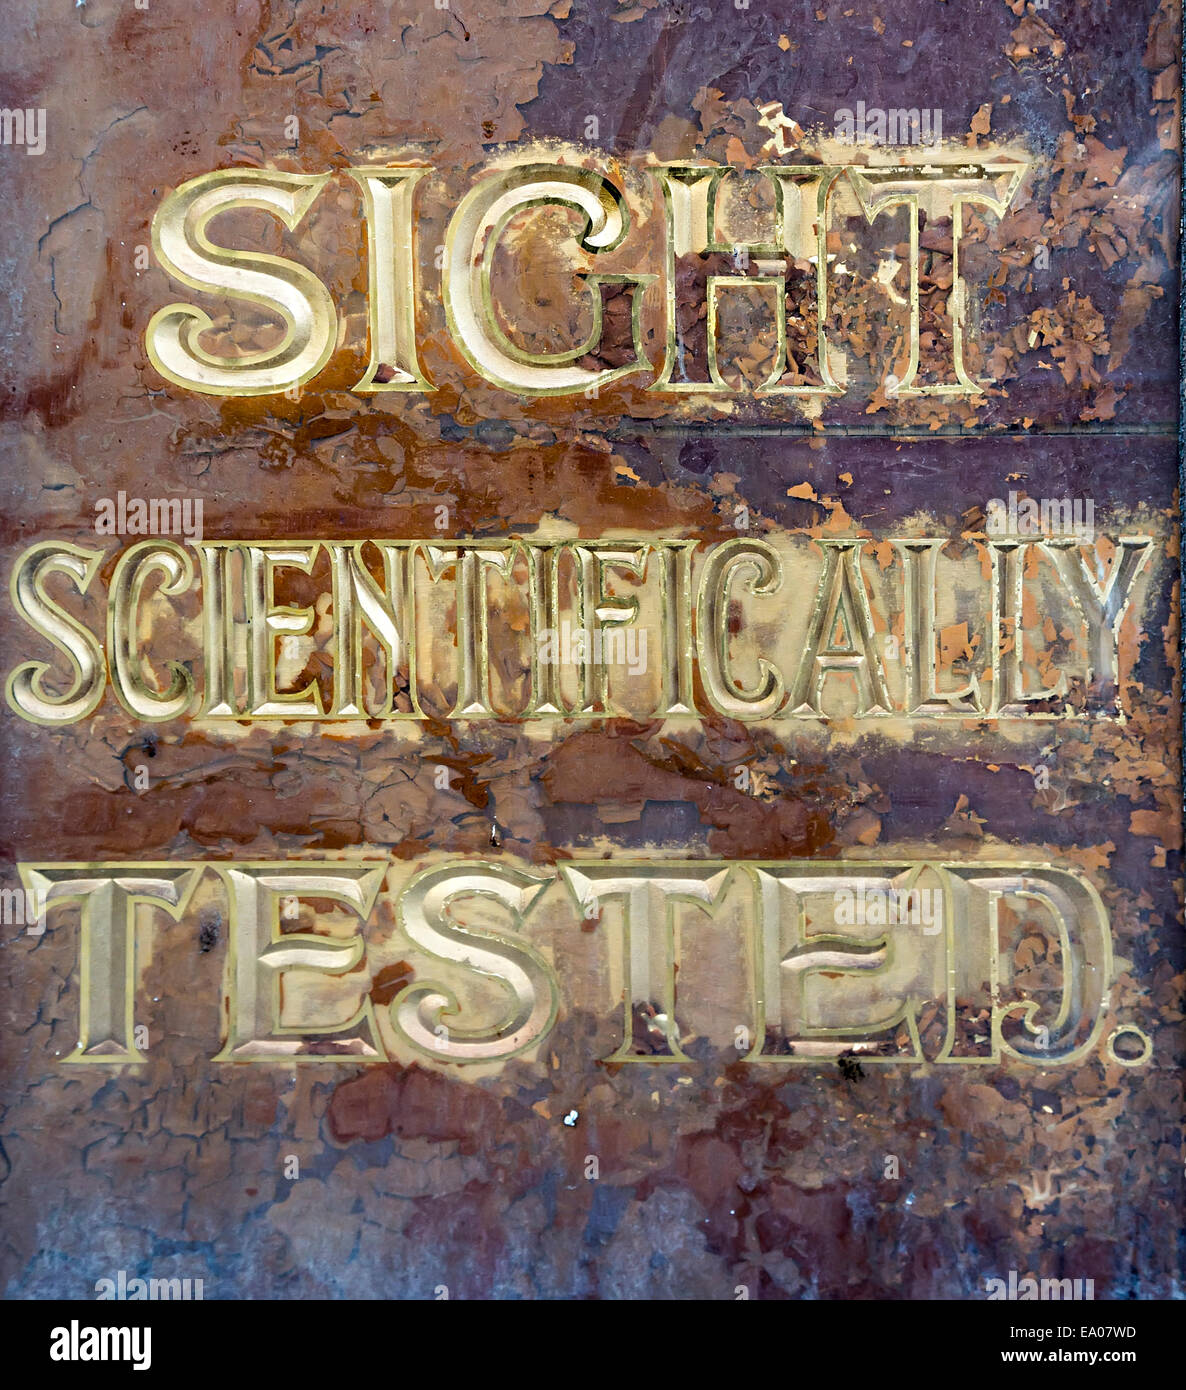 Faded sign on optician's shop Sight scientifically tested, Clonmel, Ireland - Stock Image